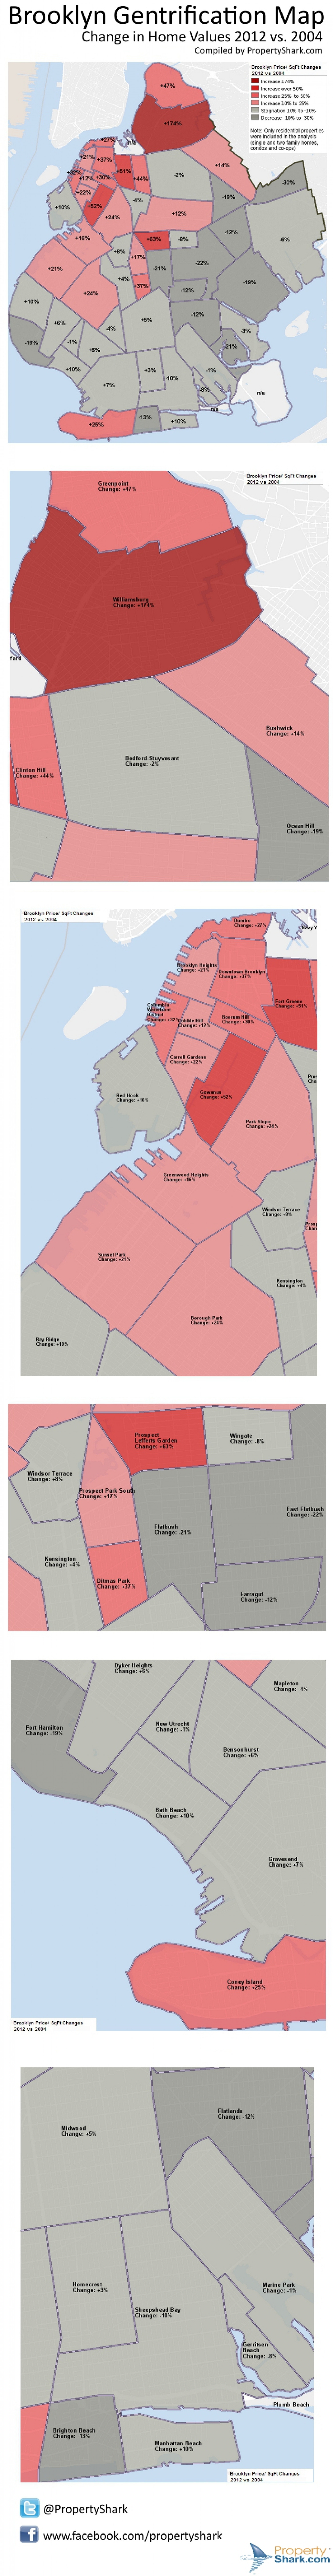 Brooklyn Gentrification Map Infographic